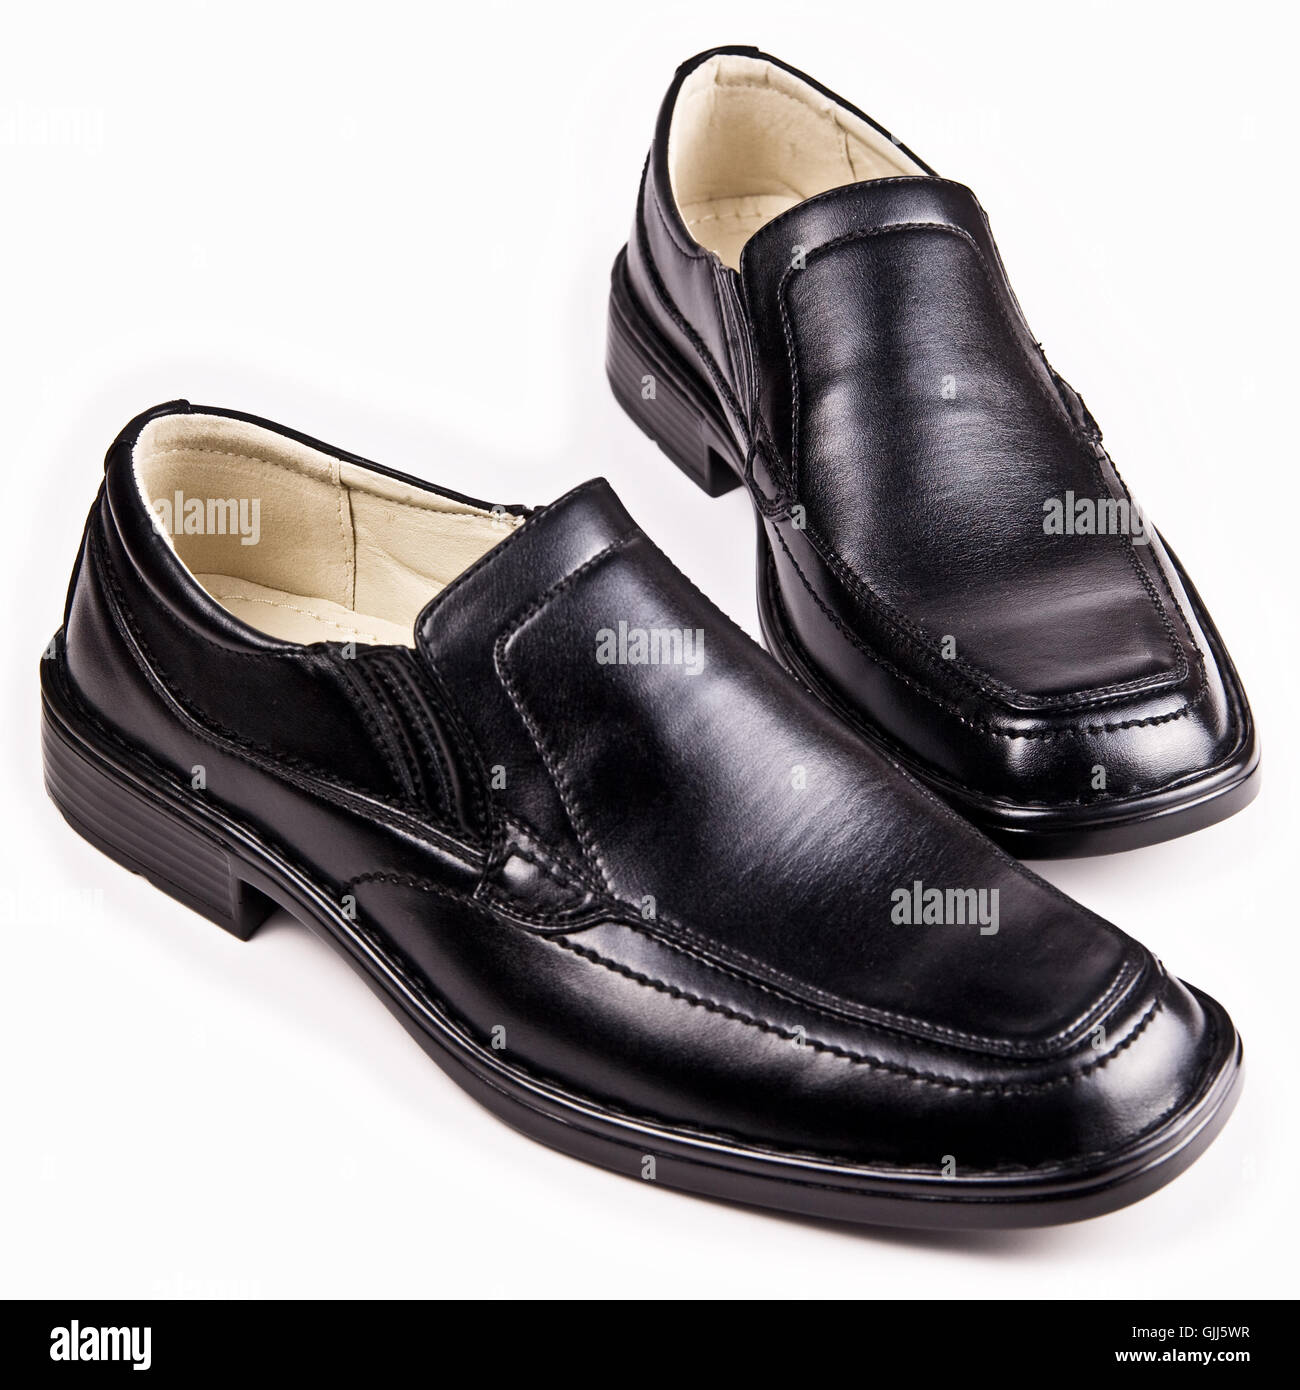 masters shoes noble - Stock Image